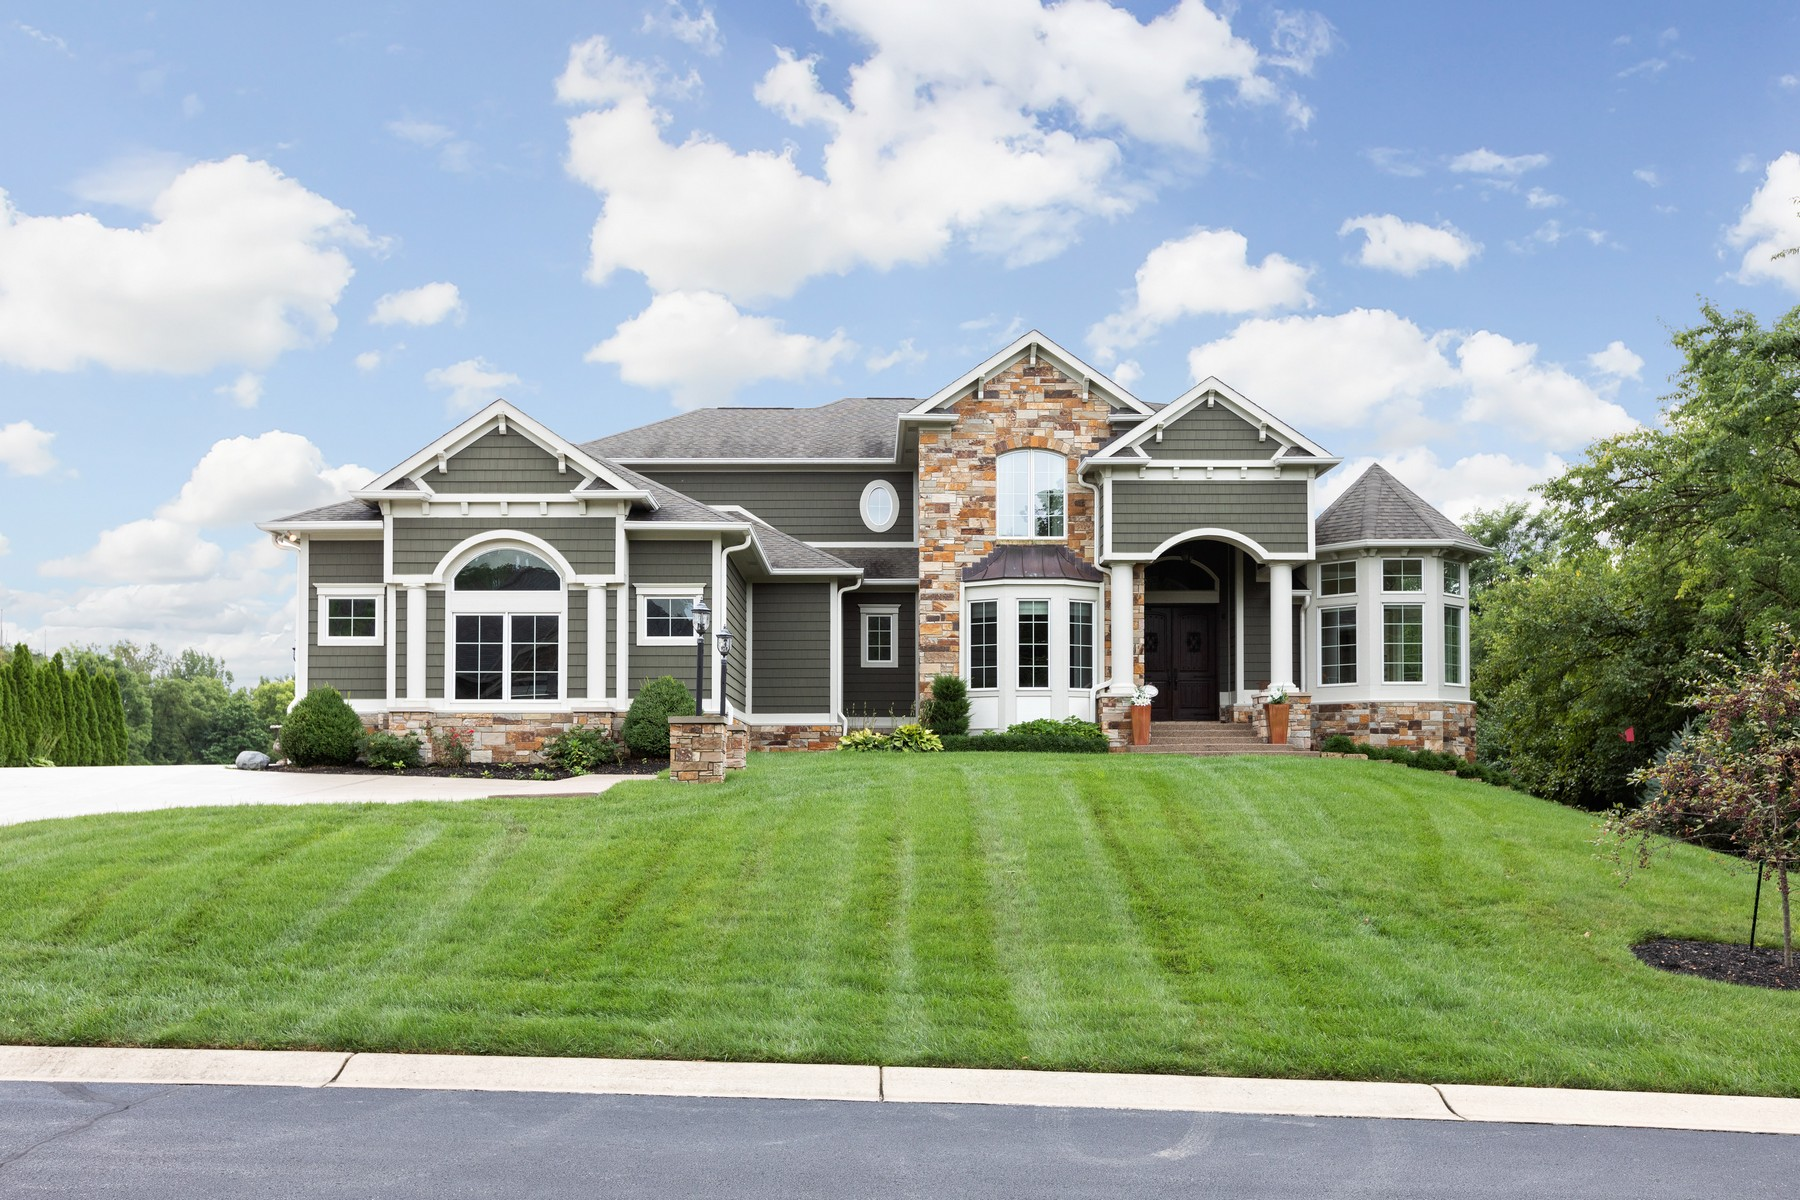 Single Family Homes for Active at 1 Acre Lot with Gorgeous Pond Views 2521 Live Oak Lane Westfield, Indiana 46074 United States